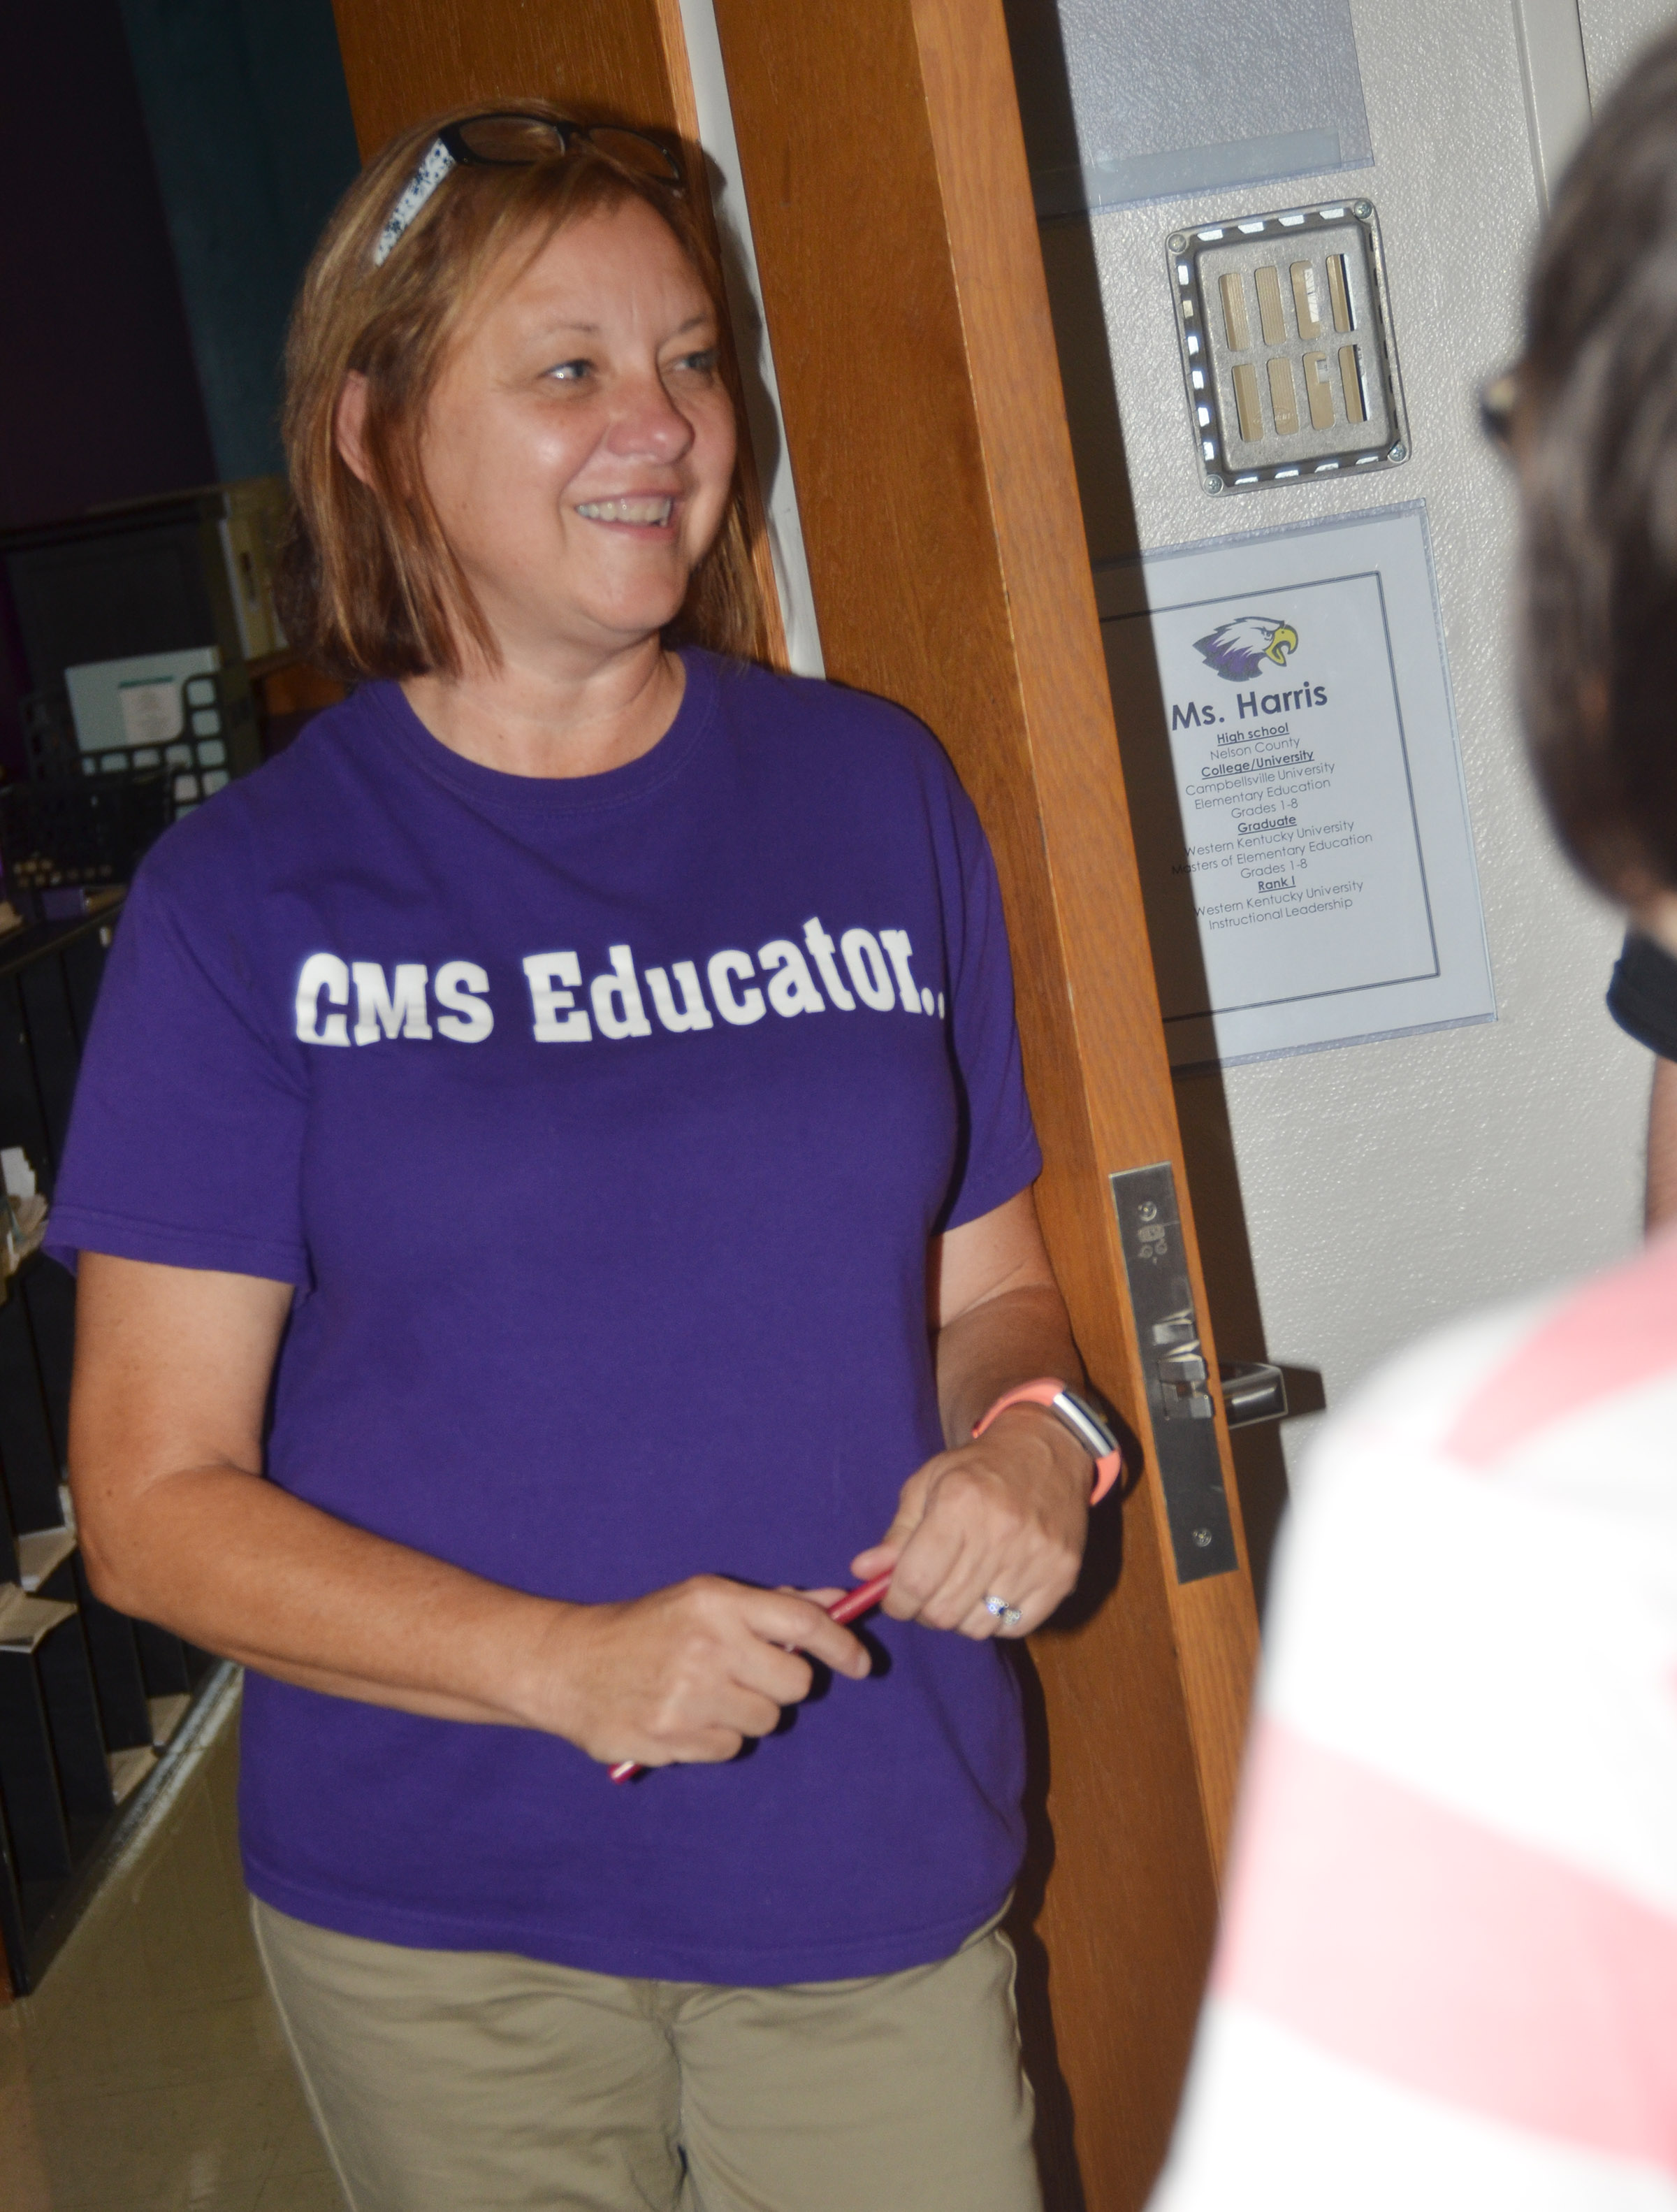 CMS teacher Sharon Harris talks with a parent.